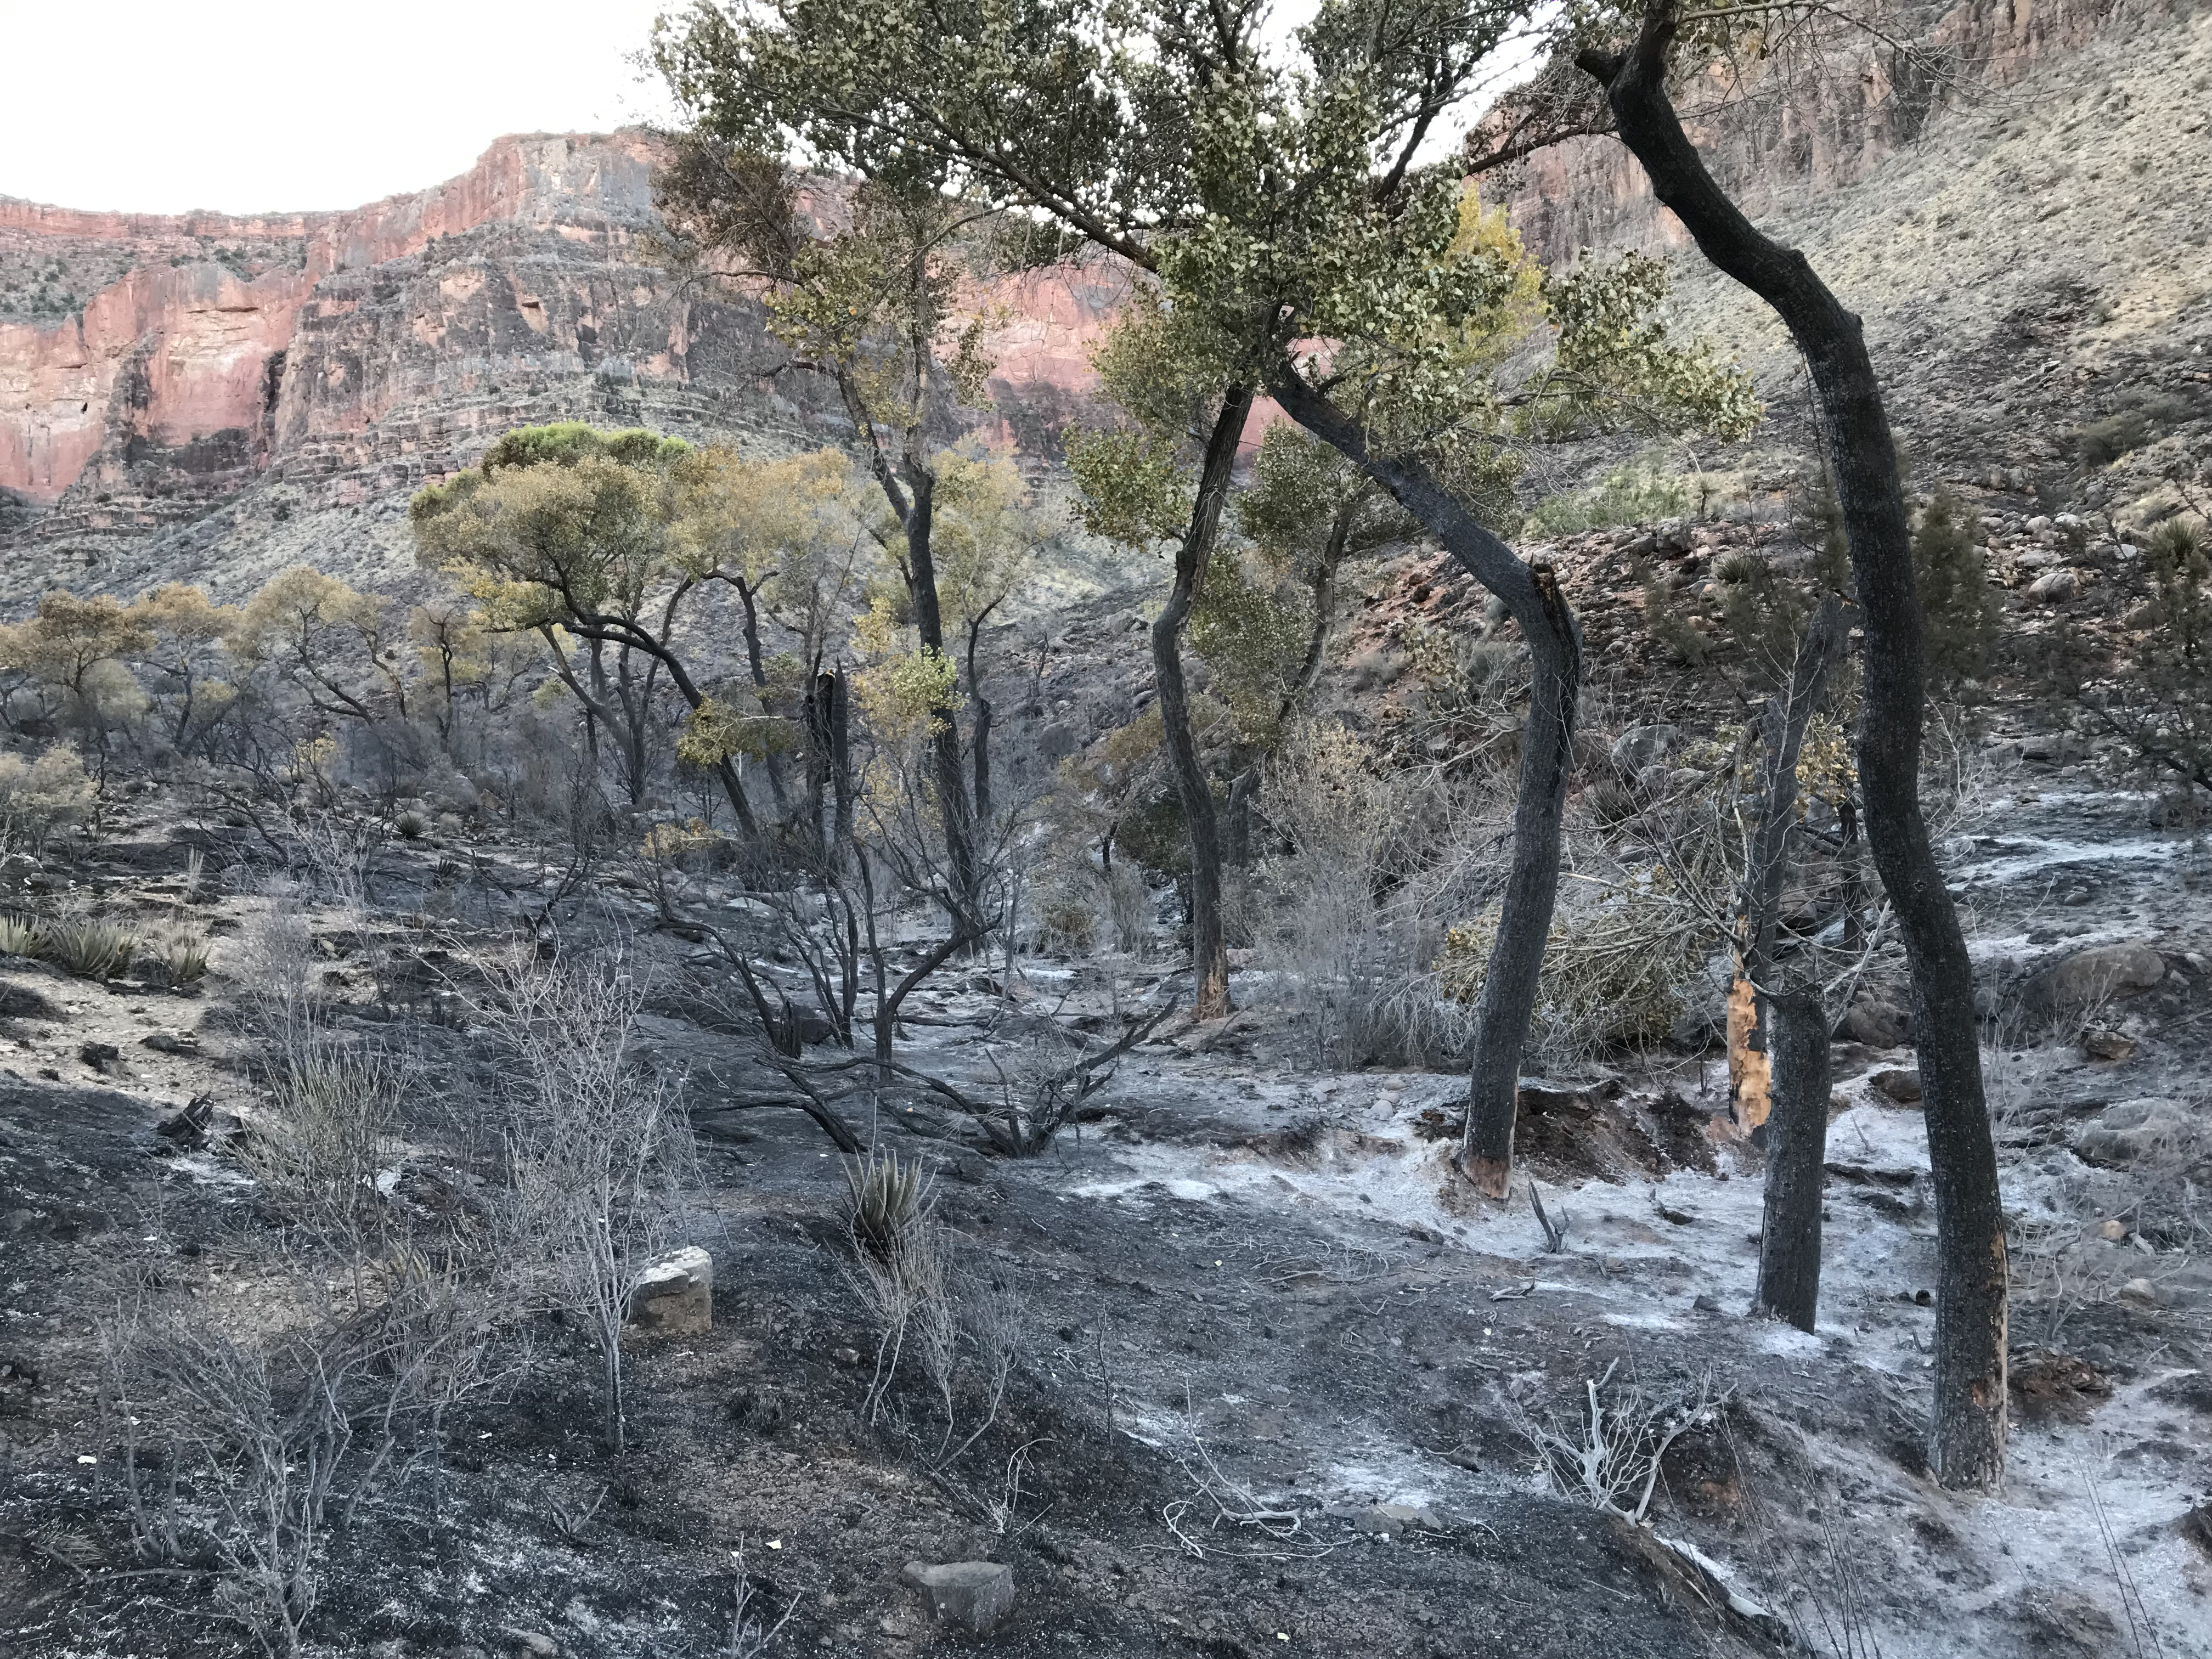 Burned area of Cottonwood Creek with black fire scar.